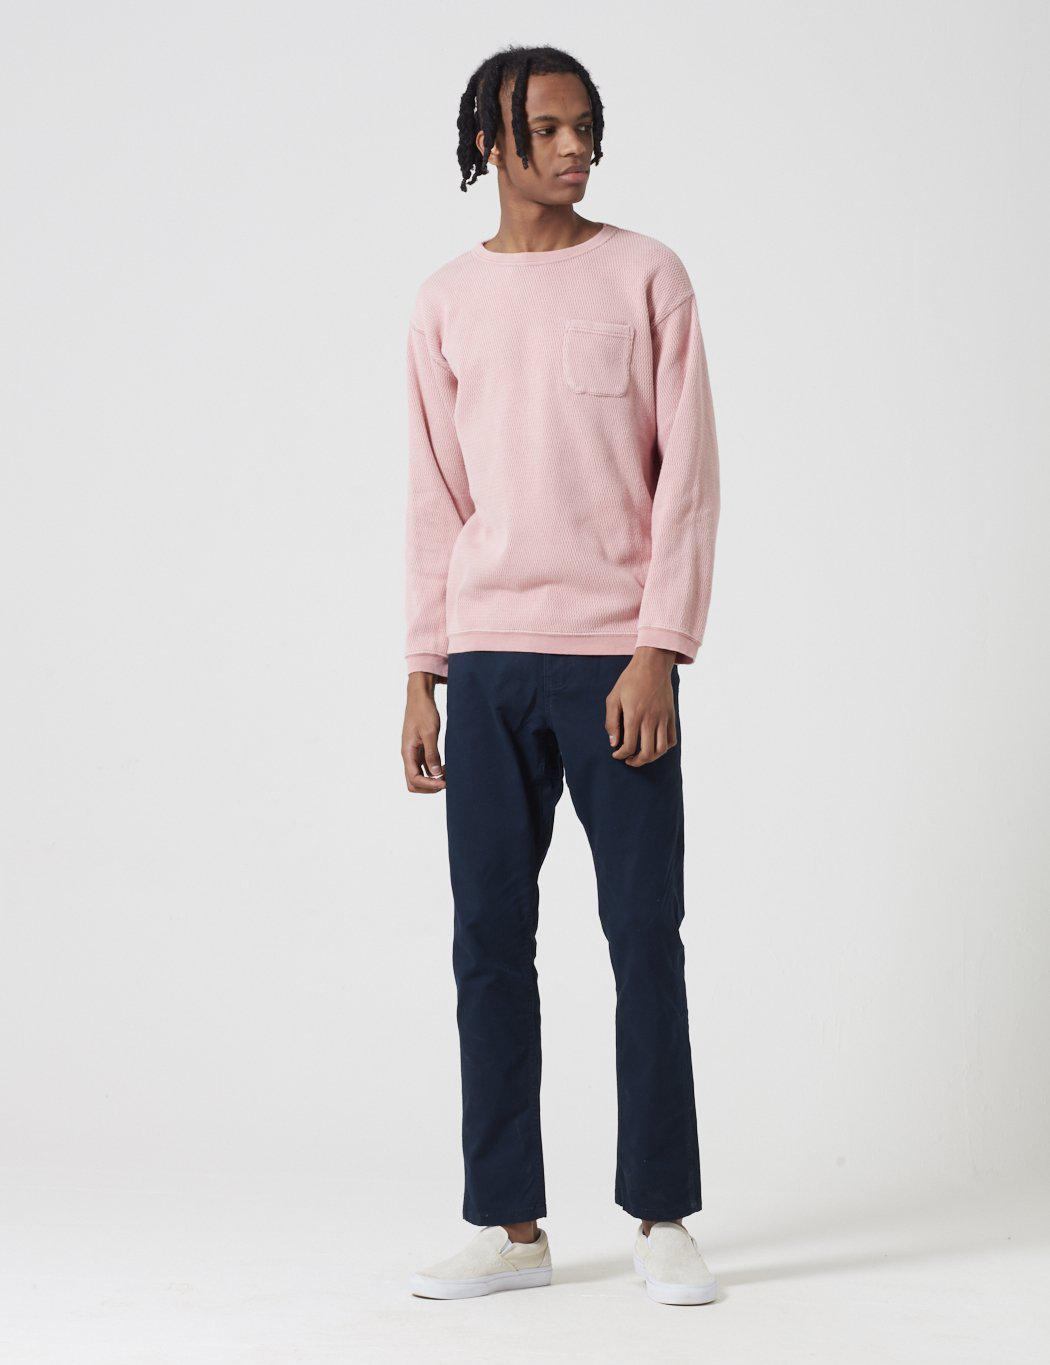 Manastash Cotton Honeycome Snug Thermal Sweatshirt in Pink for Men